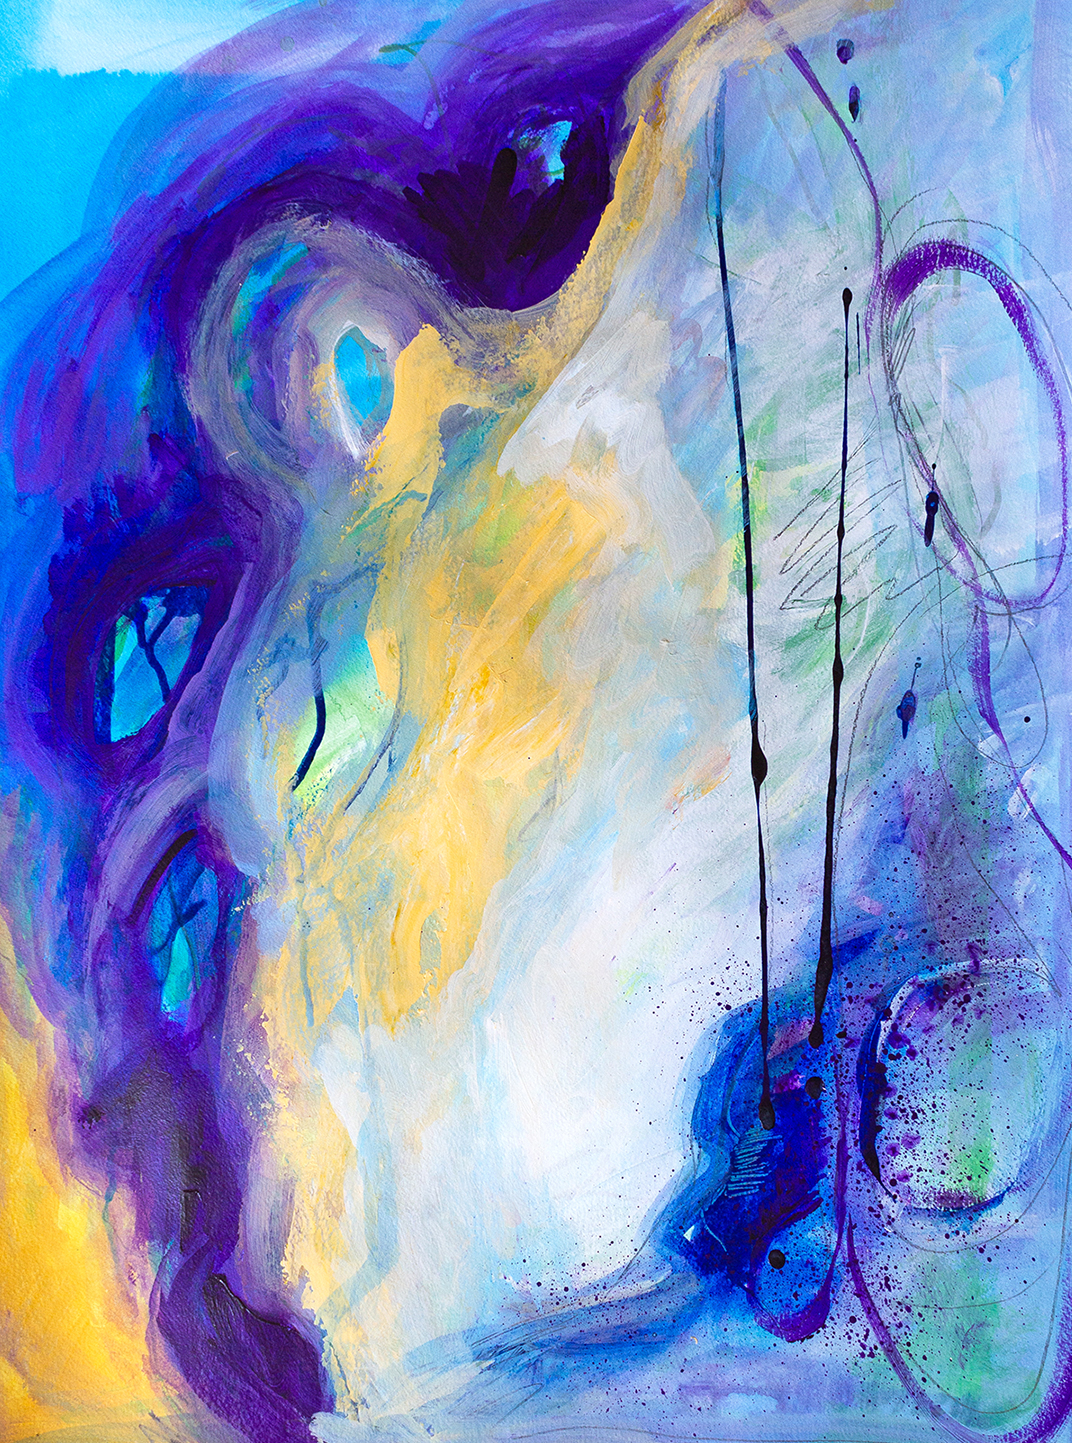 blue_abstract_painting.jpg